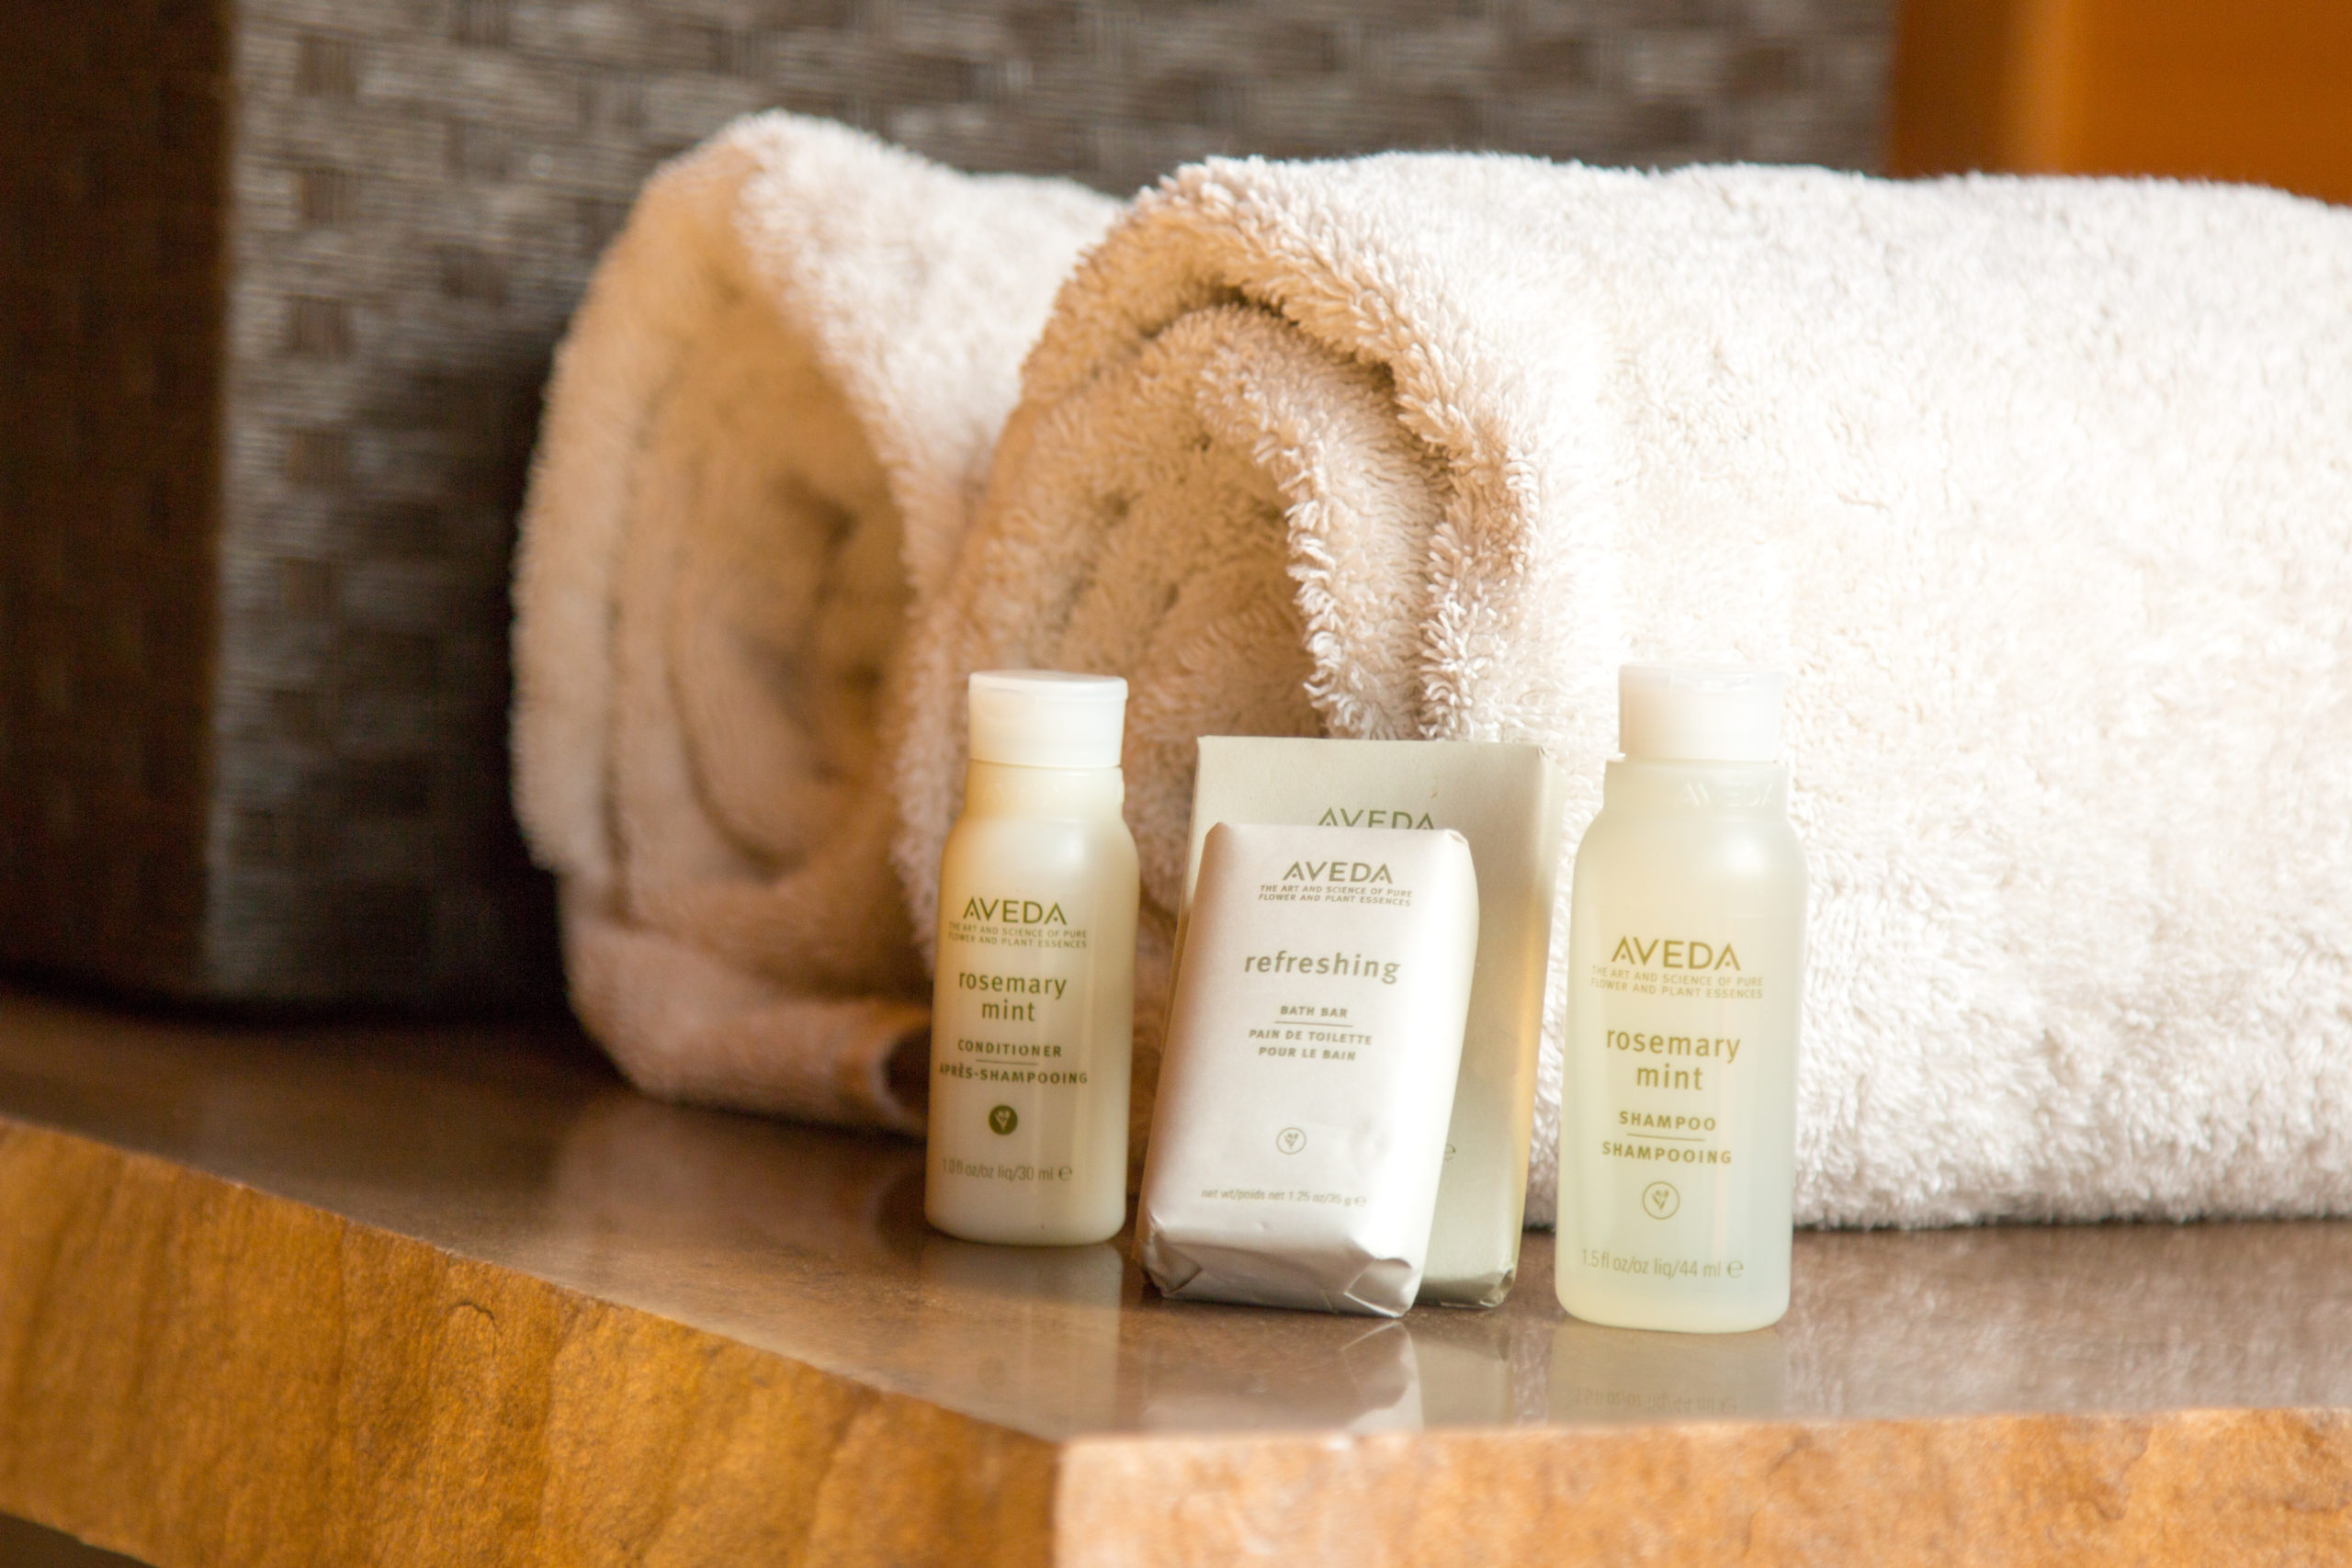 Rolled towels, Aveda bath products